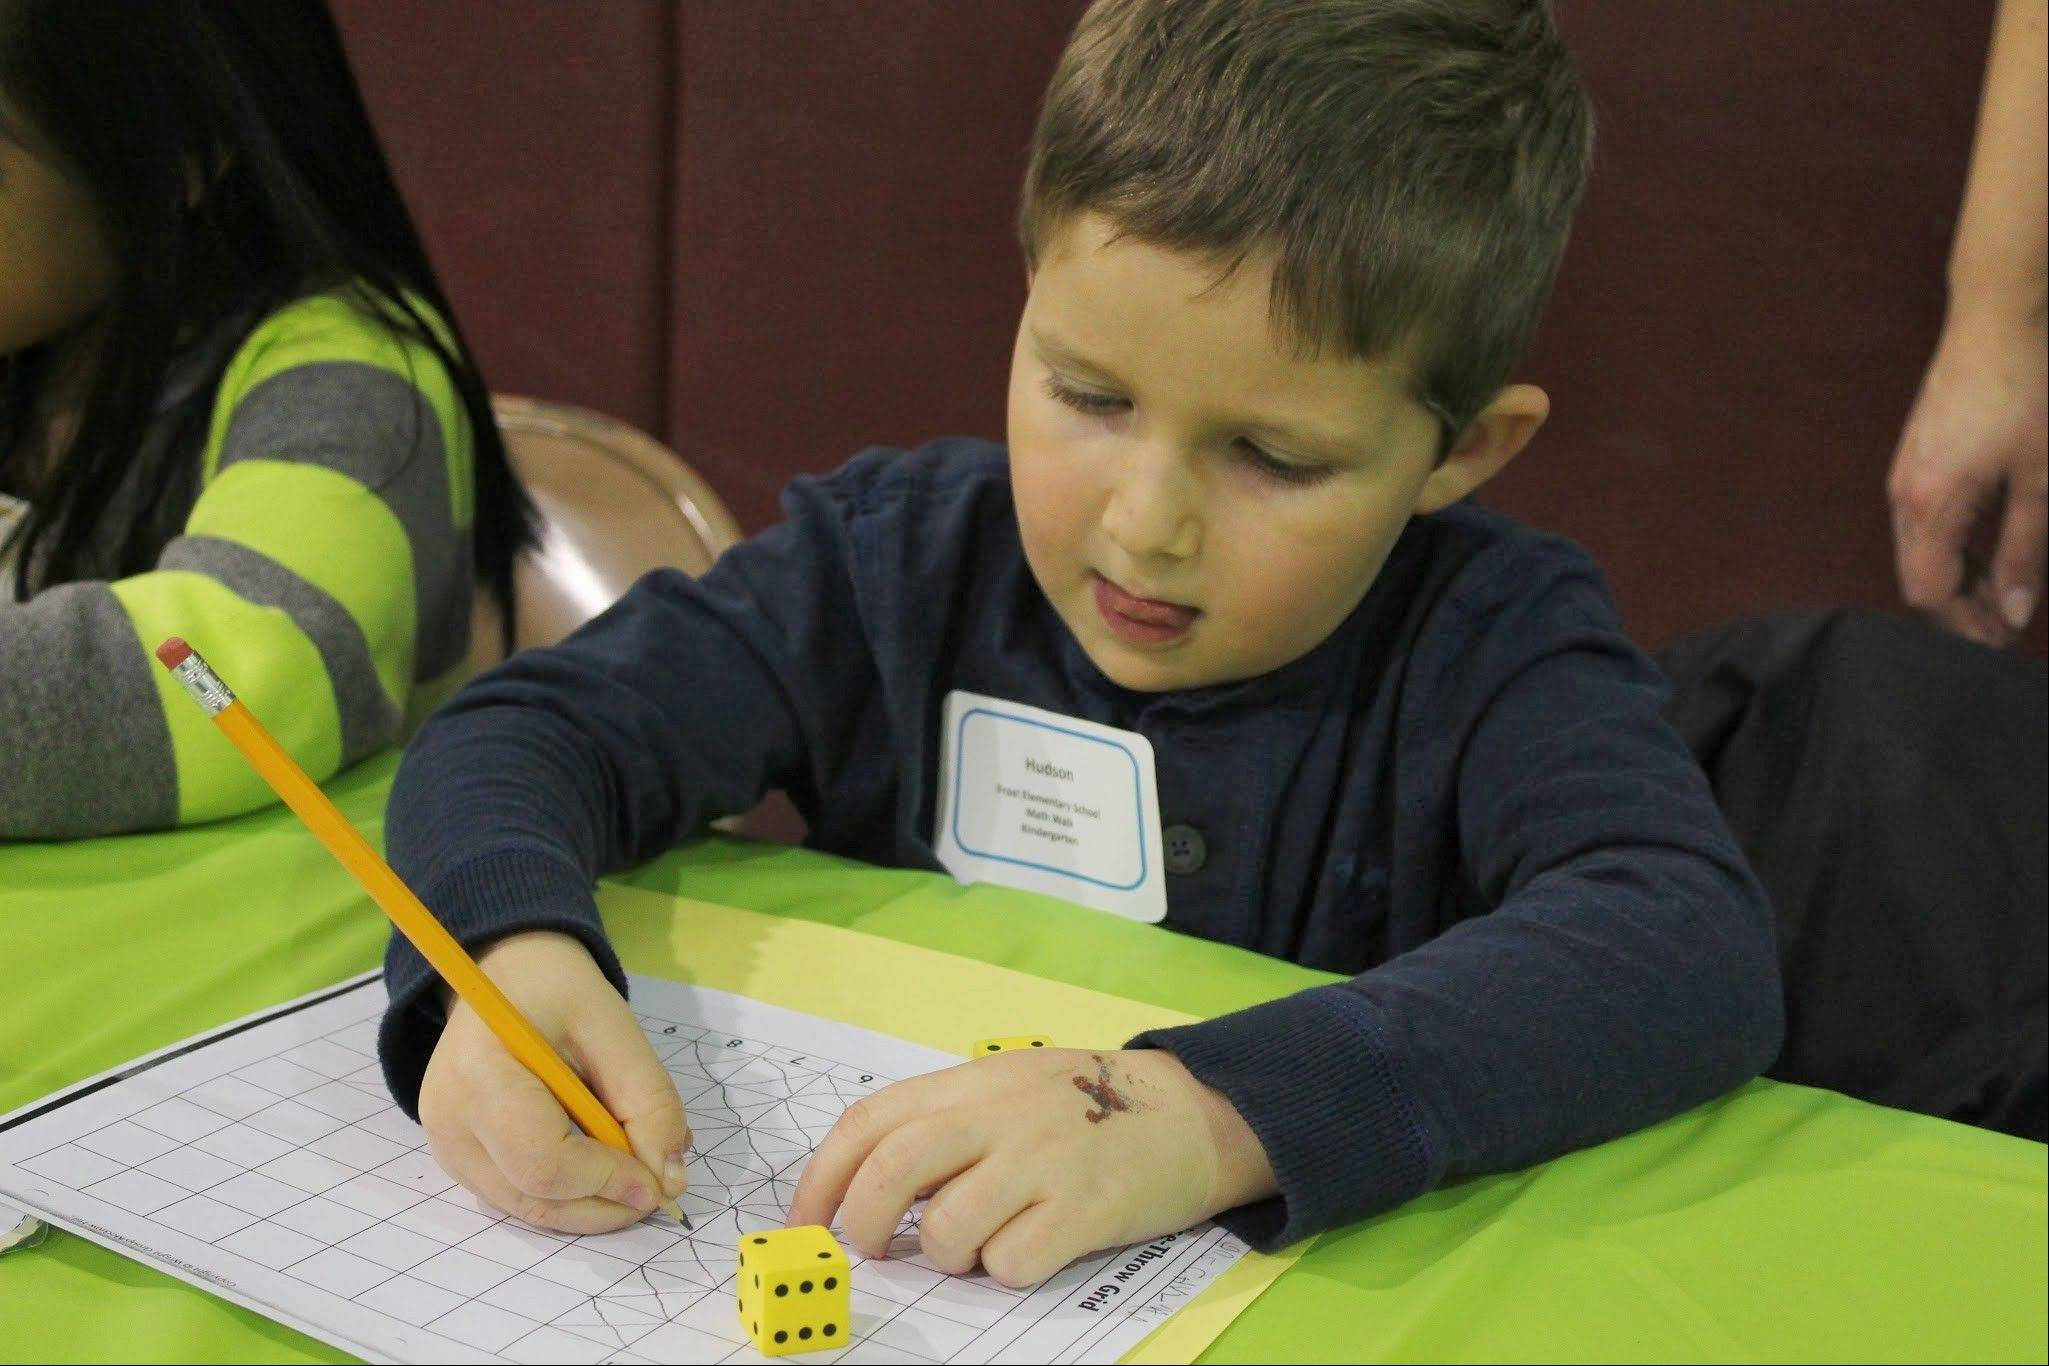 Hudson Schulman, a kindergartner from Frost Elementary School in Mount Prospect, demonstrates a math counting game at the State of the Schools event. Prekindergarten through eighth-grade students in District 21 explained to parents and community members what they are learning in school and how it connects to the world around them.